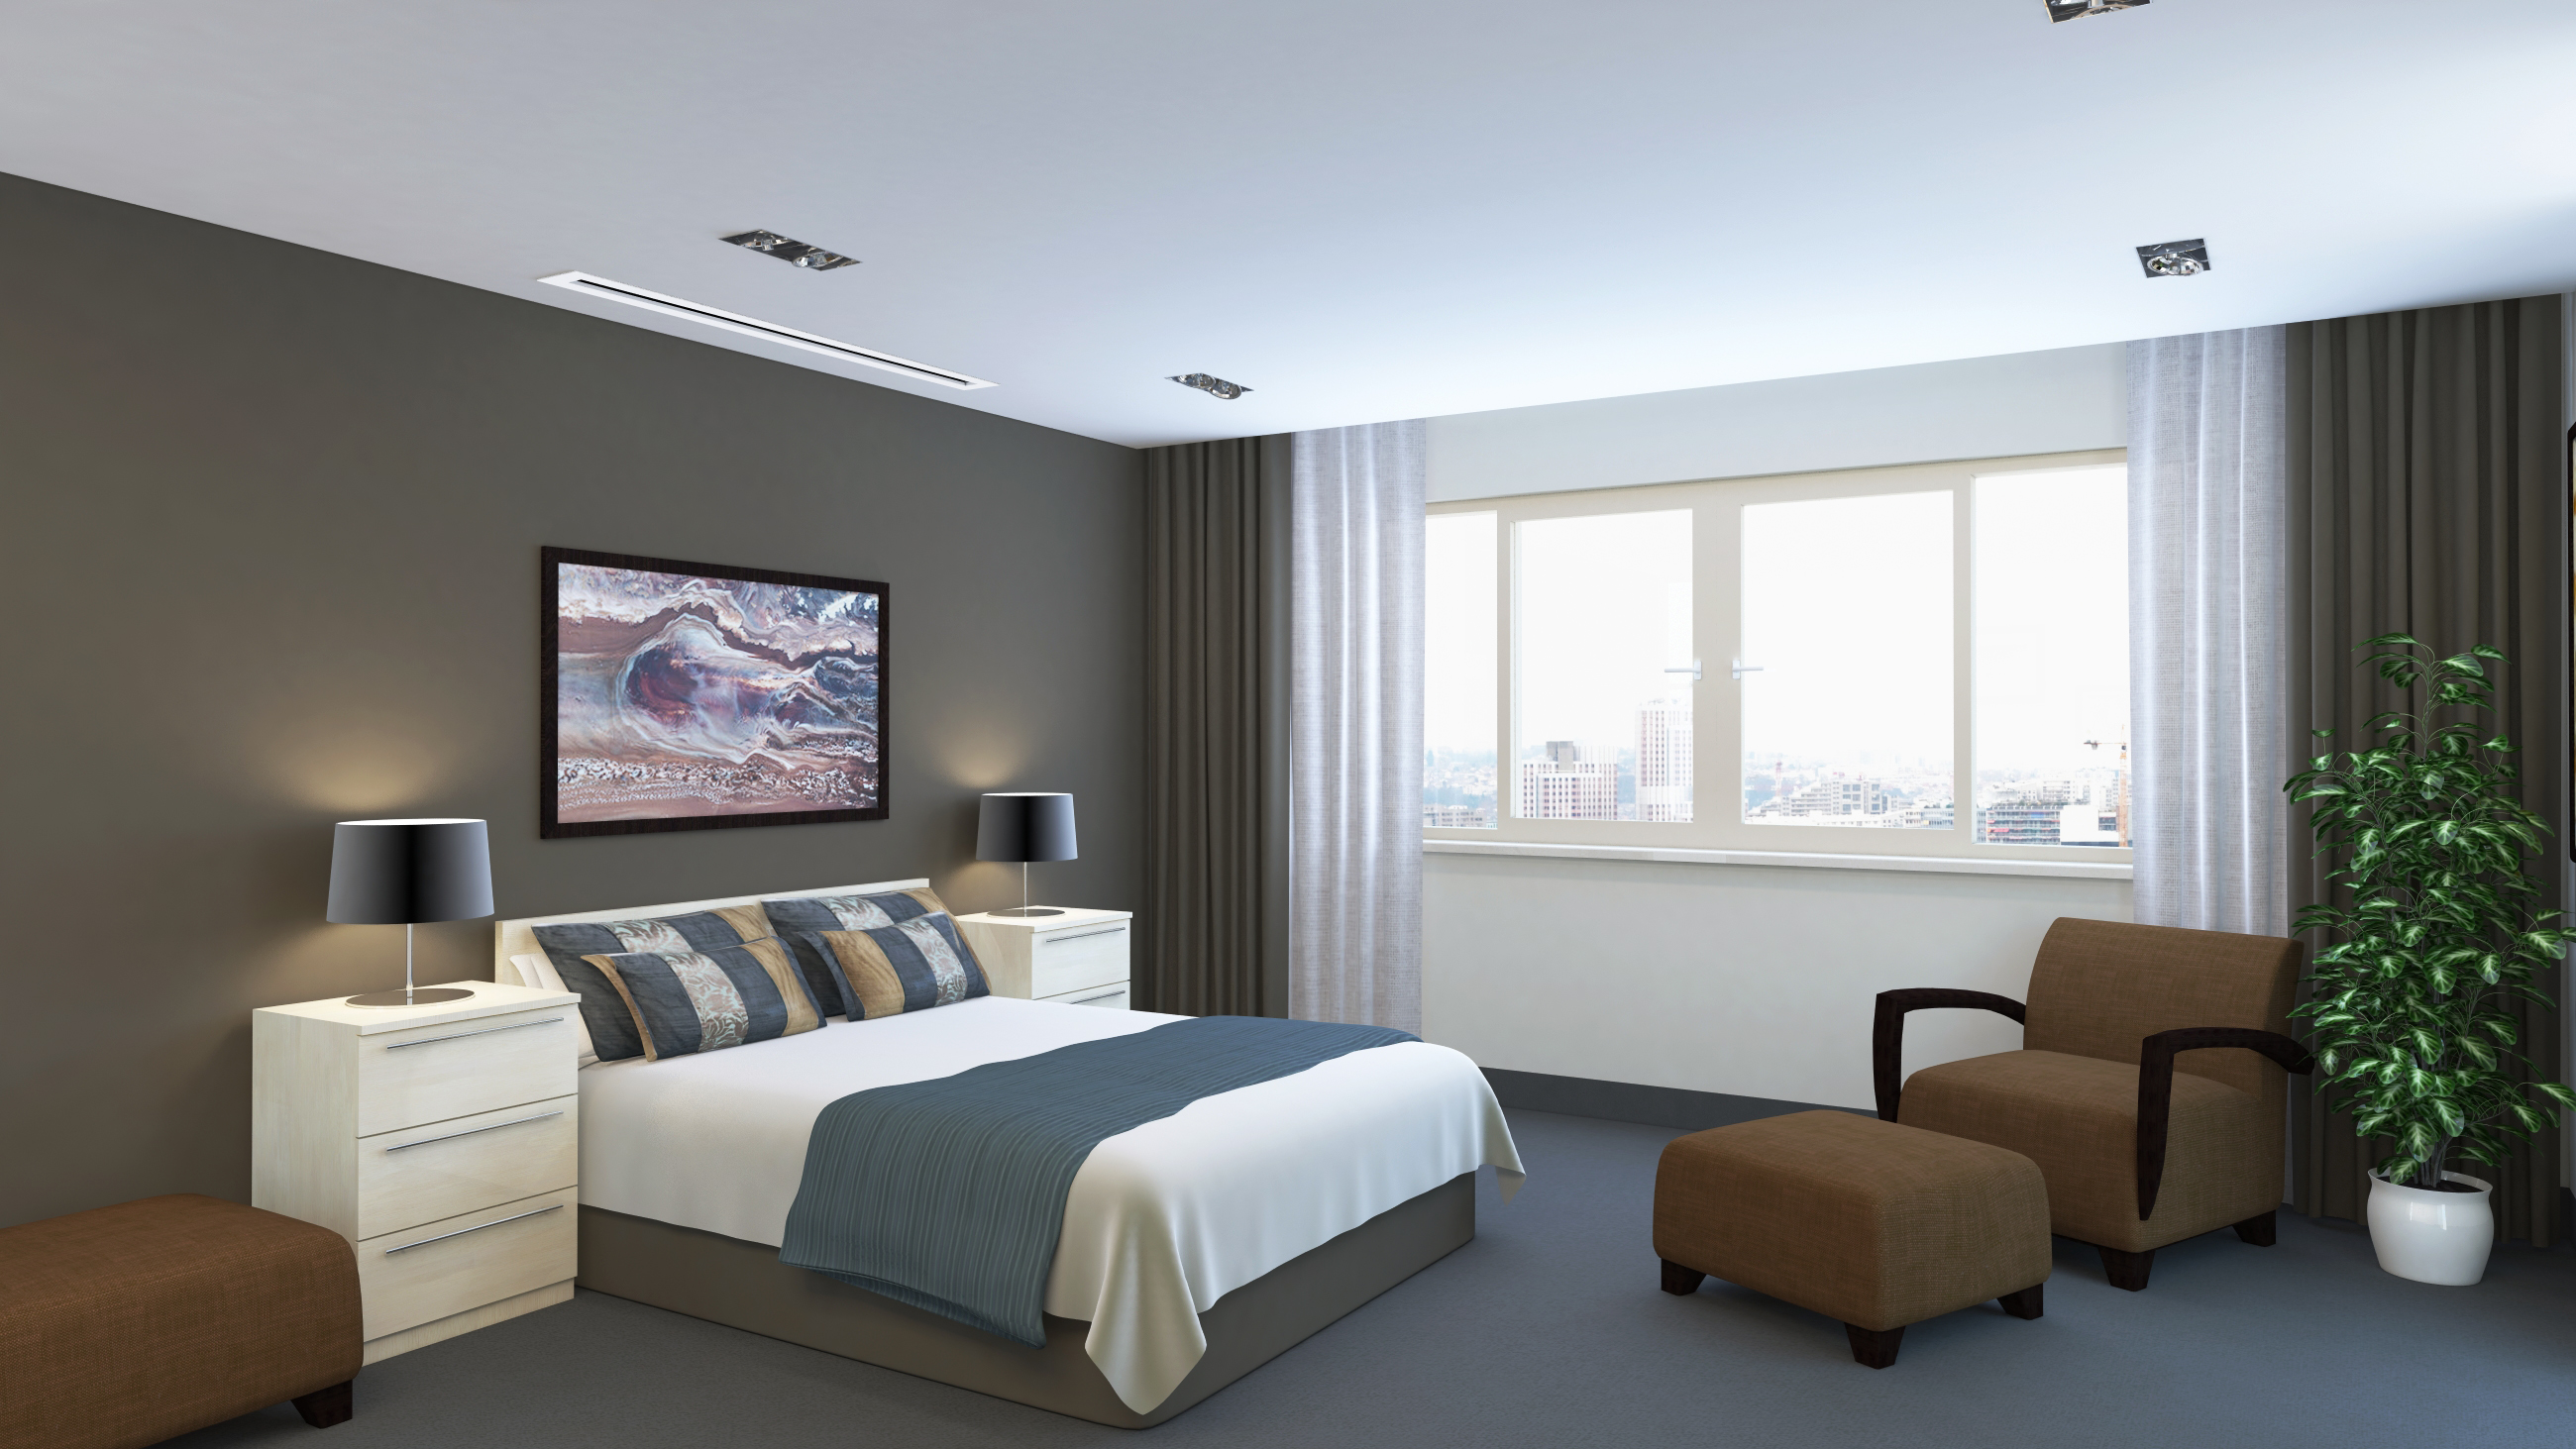 bedroom air conditioning installations expert aircon engineers